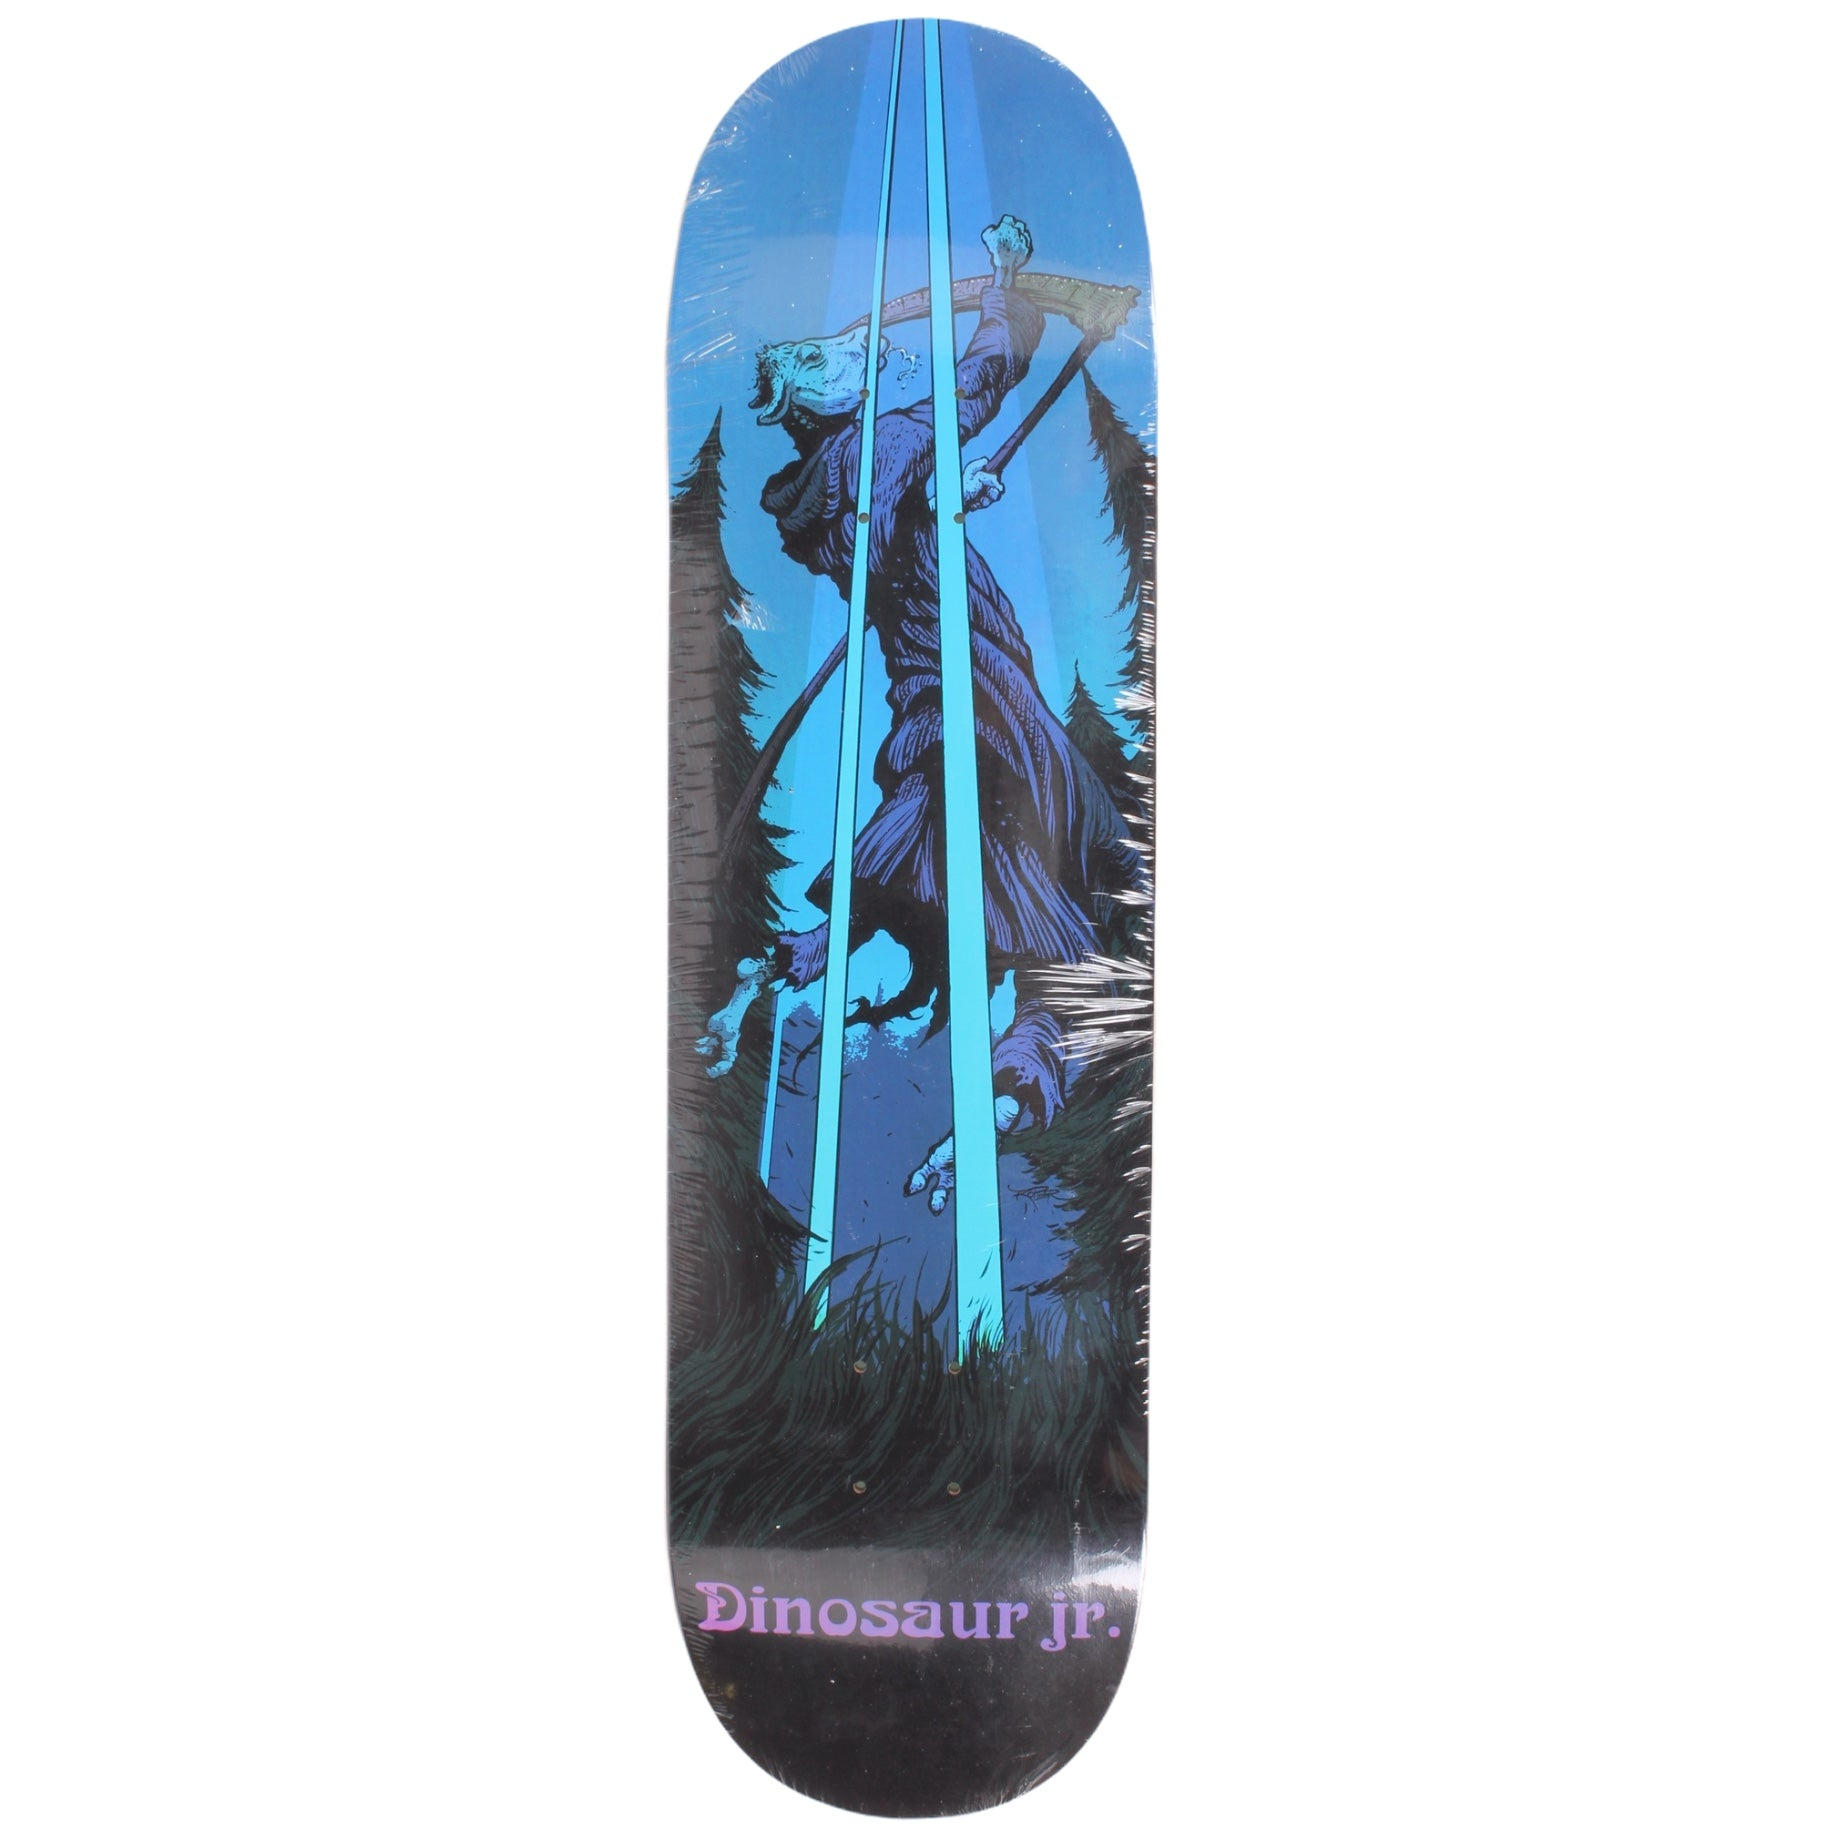 1939 Dinosaur Jr. Abduction Deck 8.5""